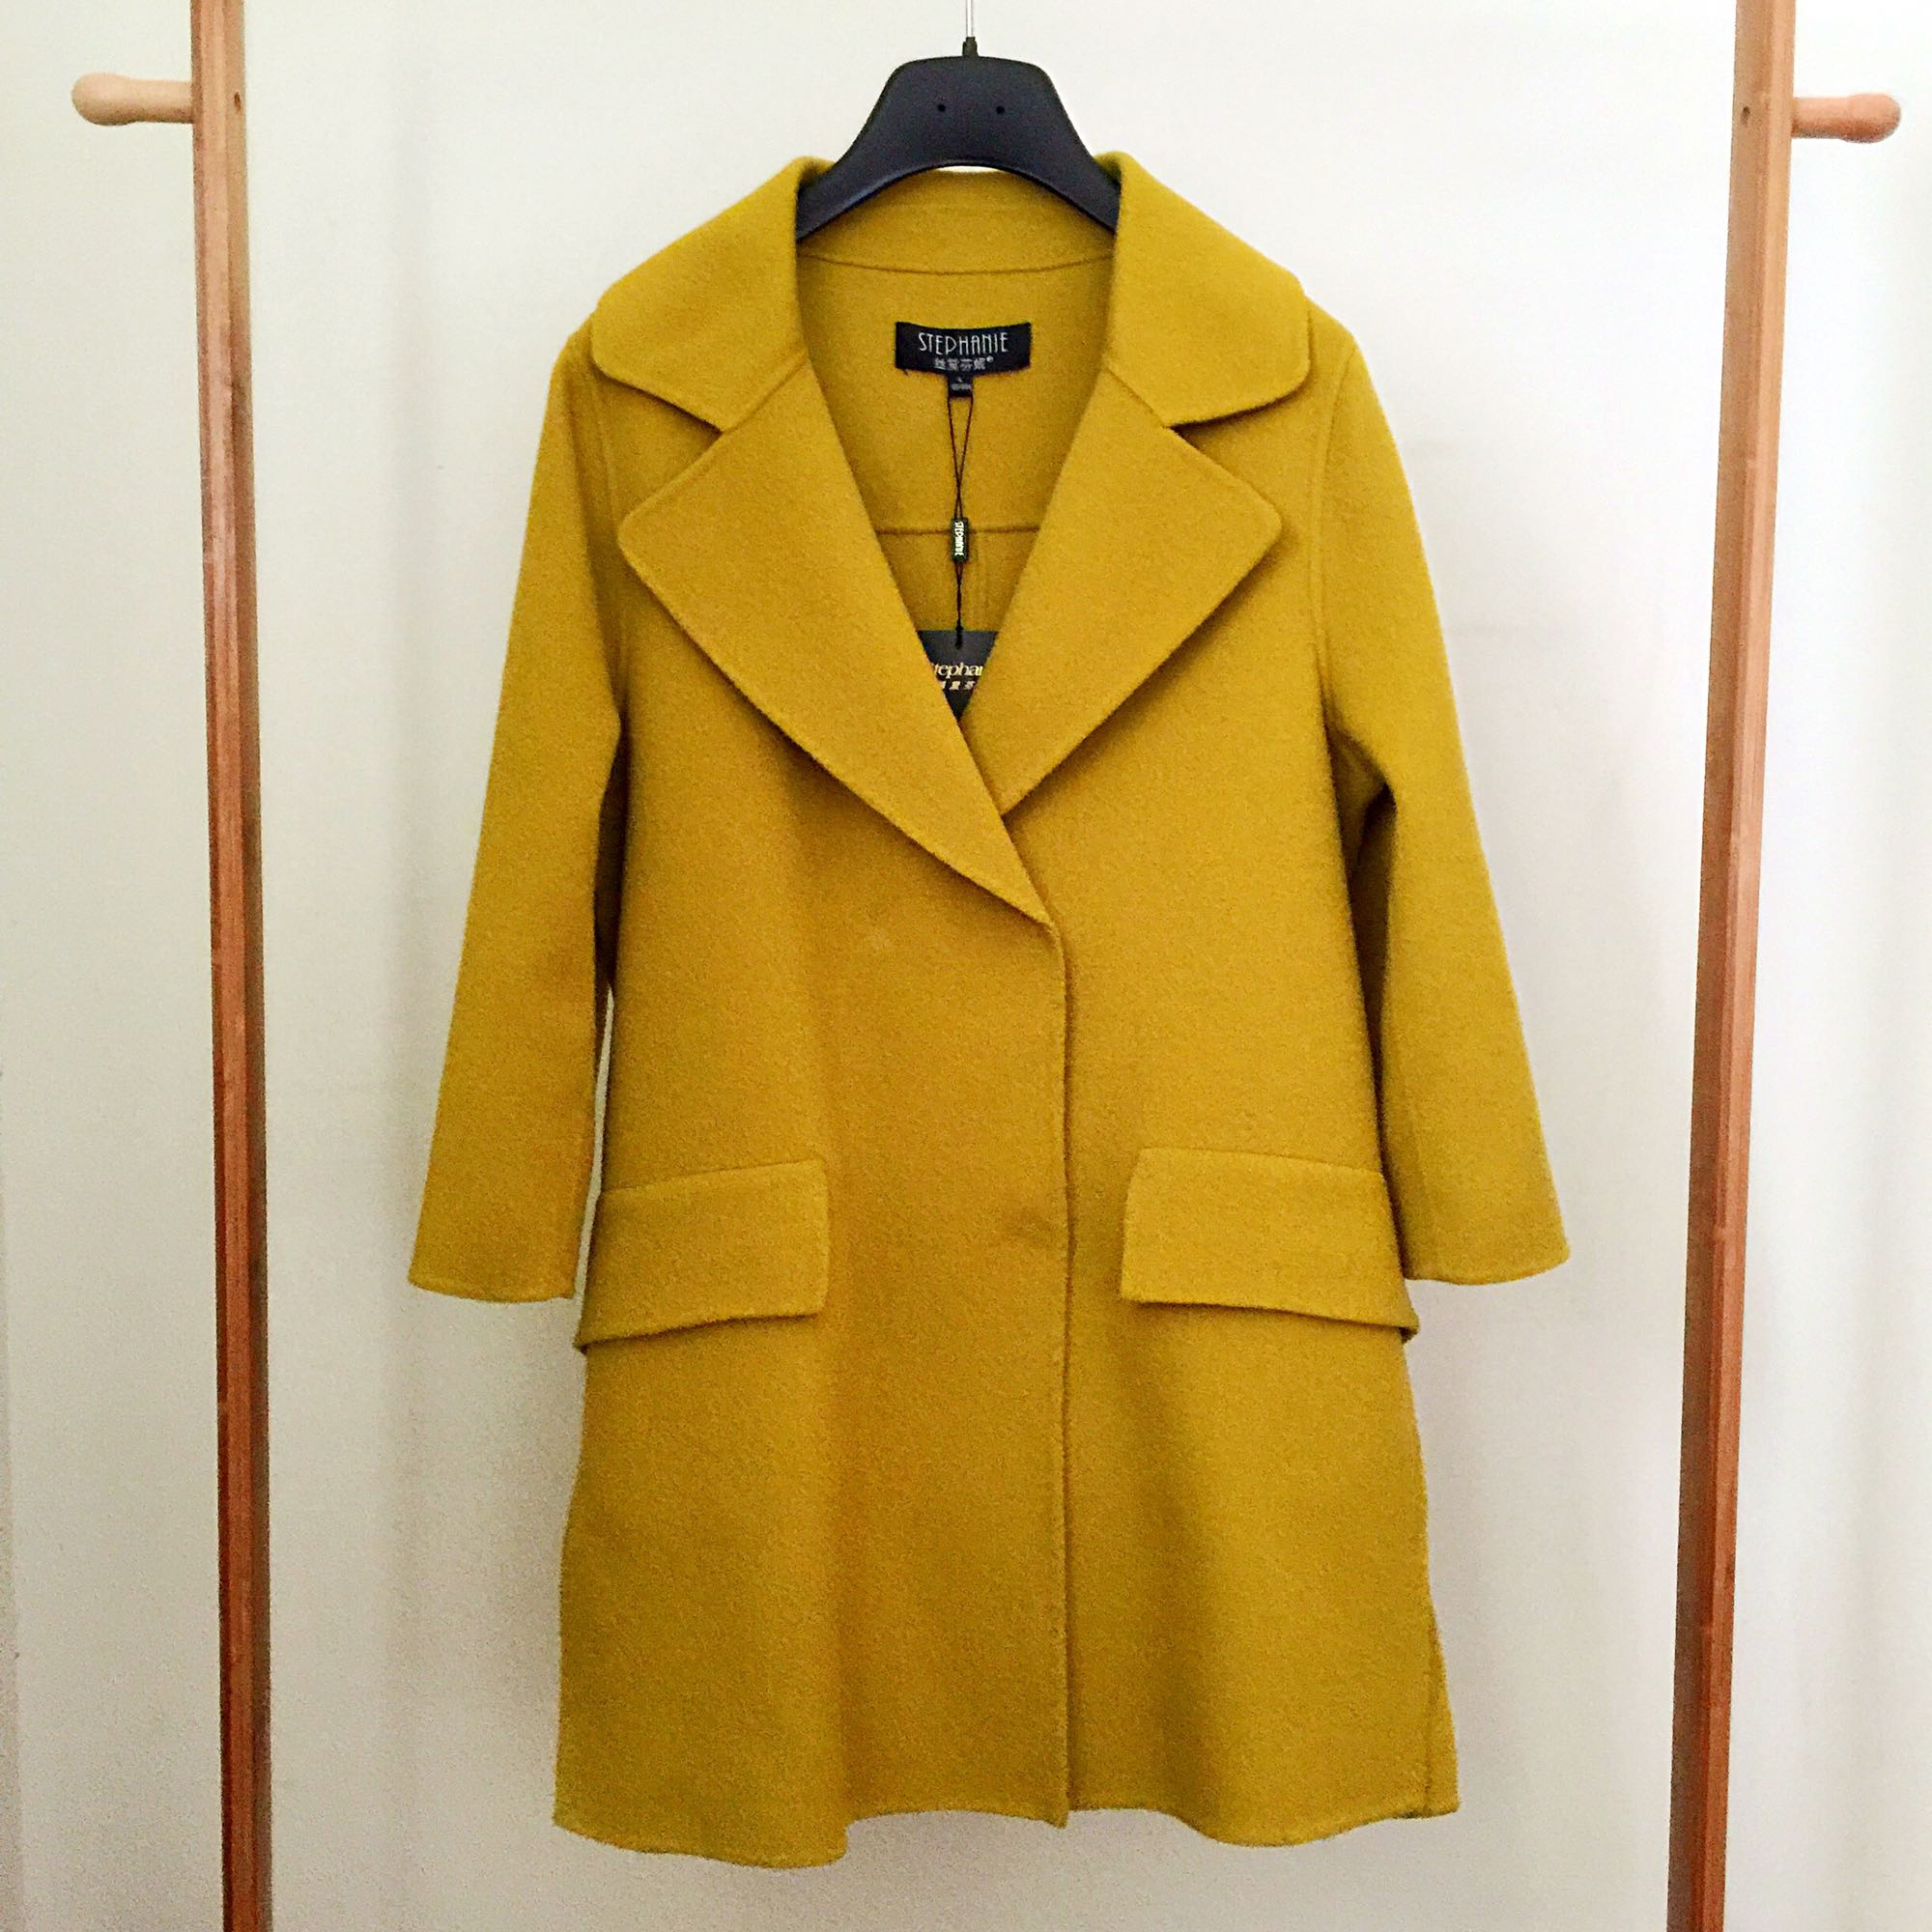 100% wool double faced warm autumn fragrant yellow suit collar design for womens woolen overcoat